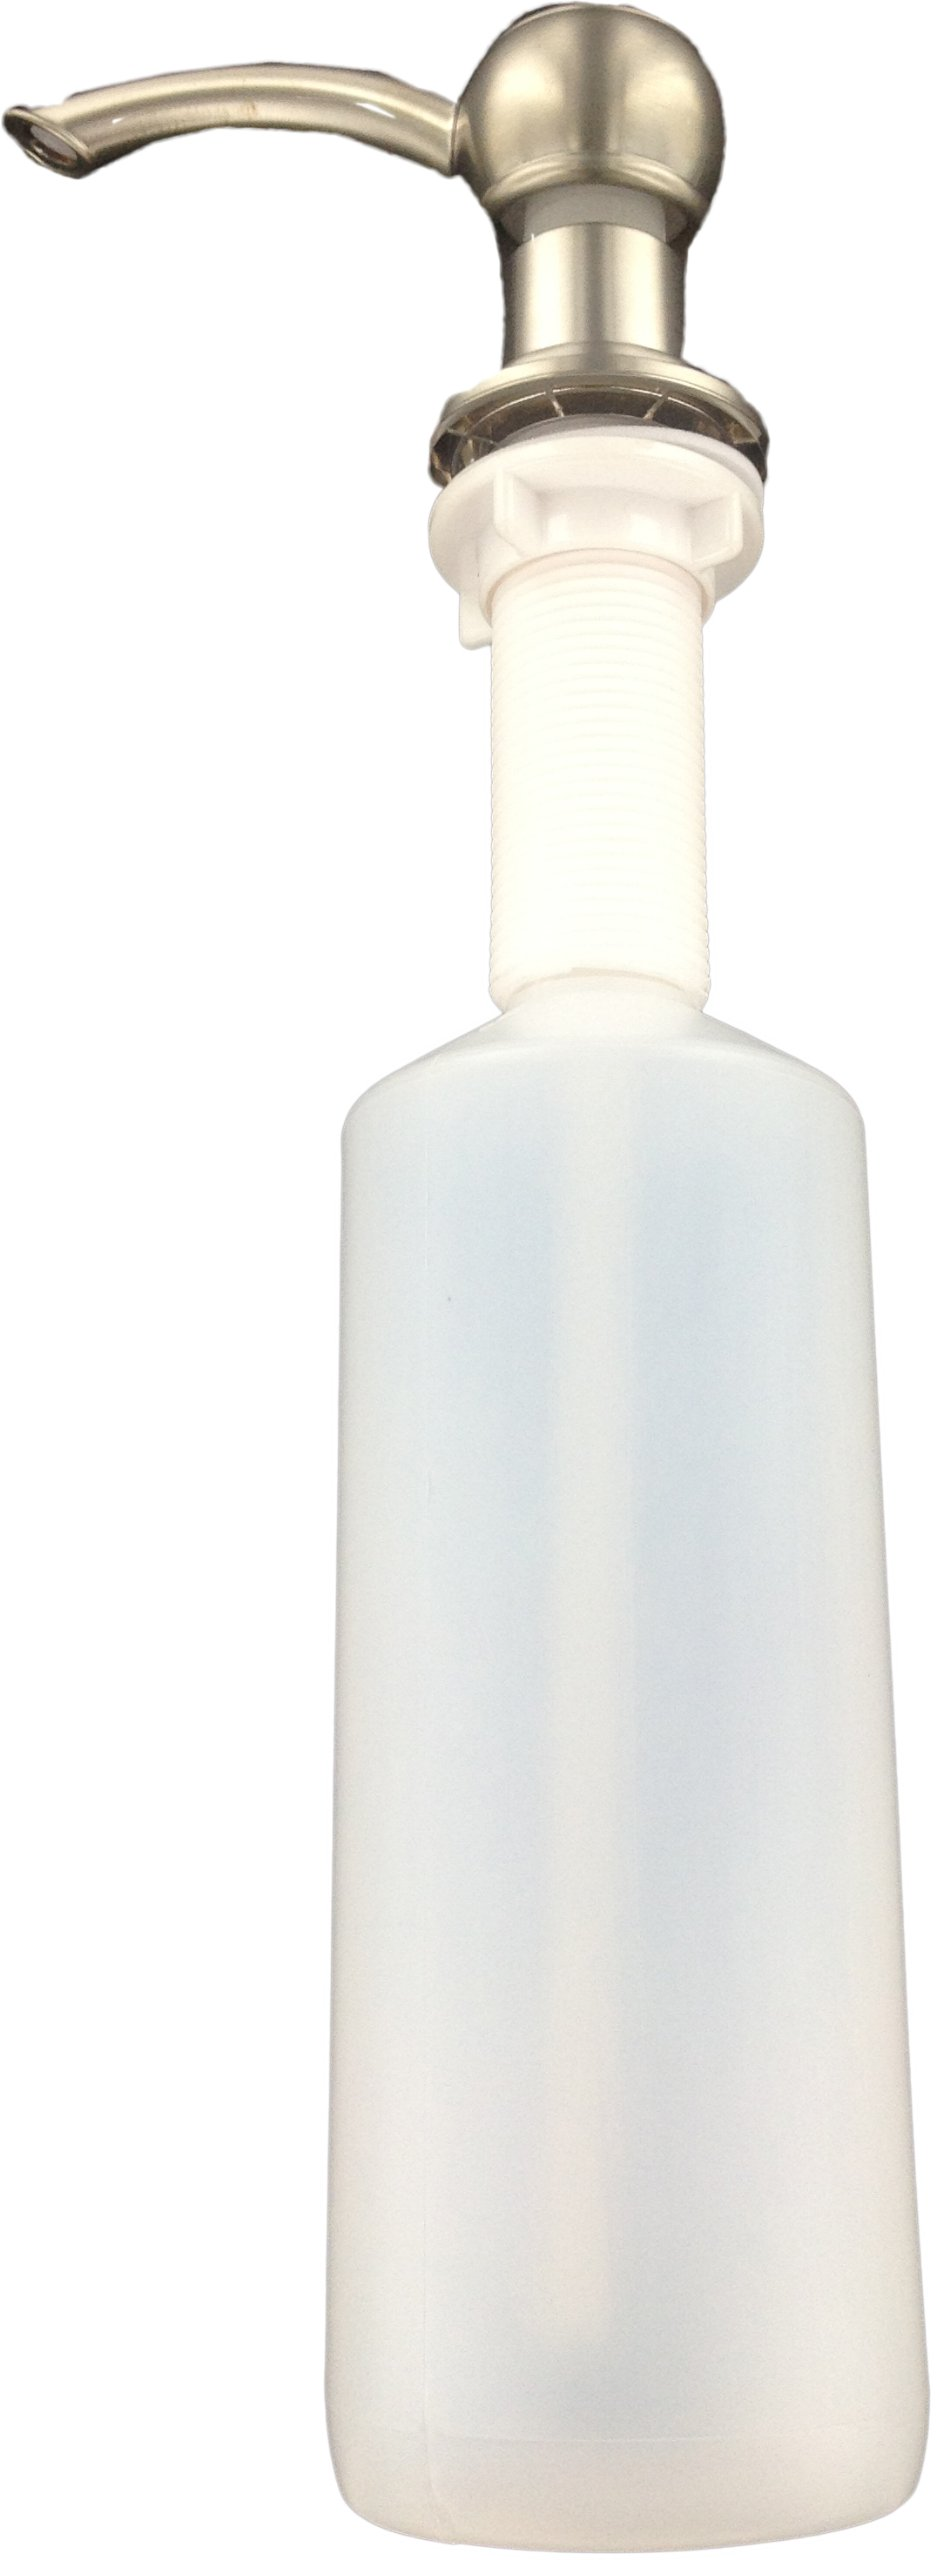 Peerless RP47826SS Soap/Lotion Dispenser Assembly, Stainless